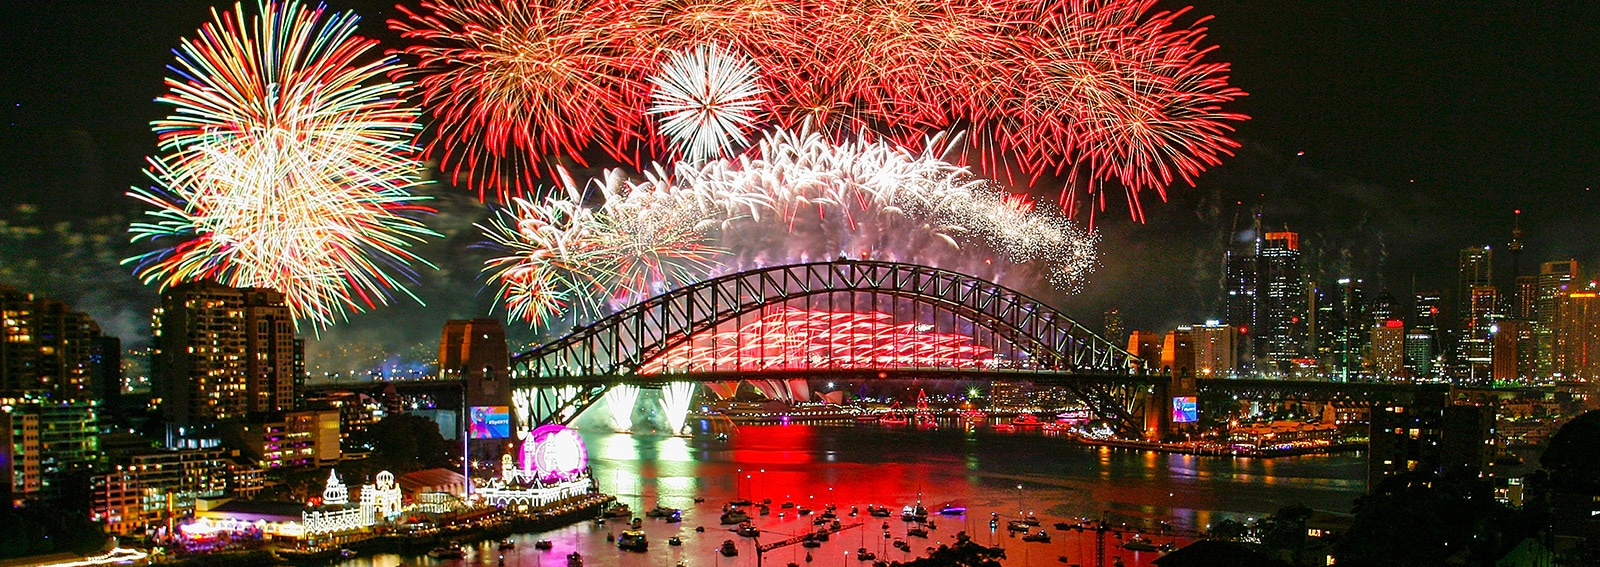 City Of Sydney Celebrates New Year's Eve 2018